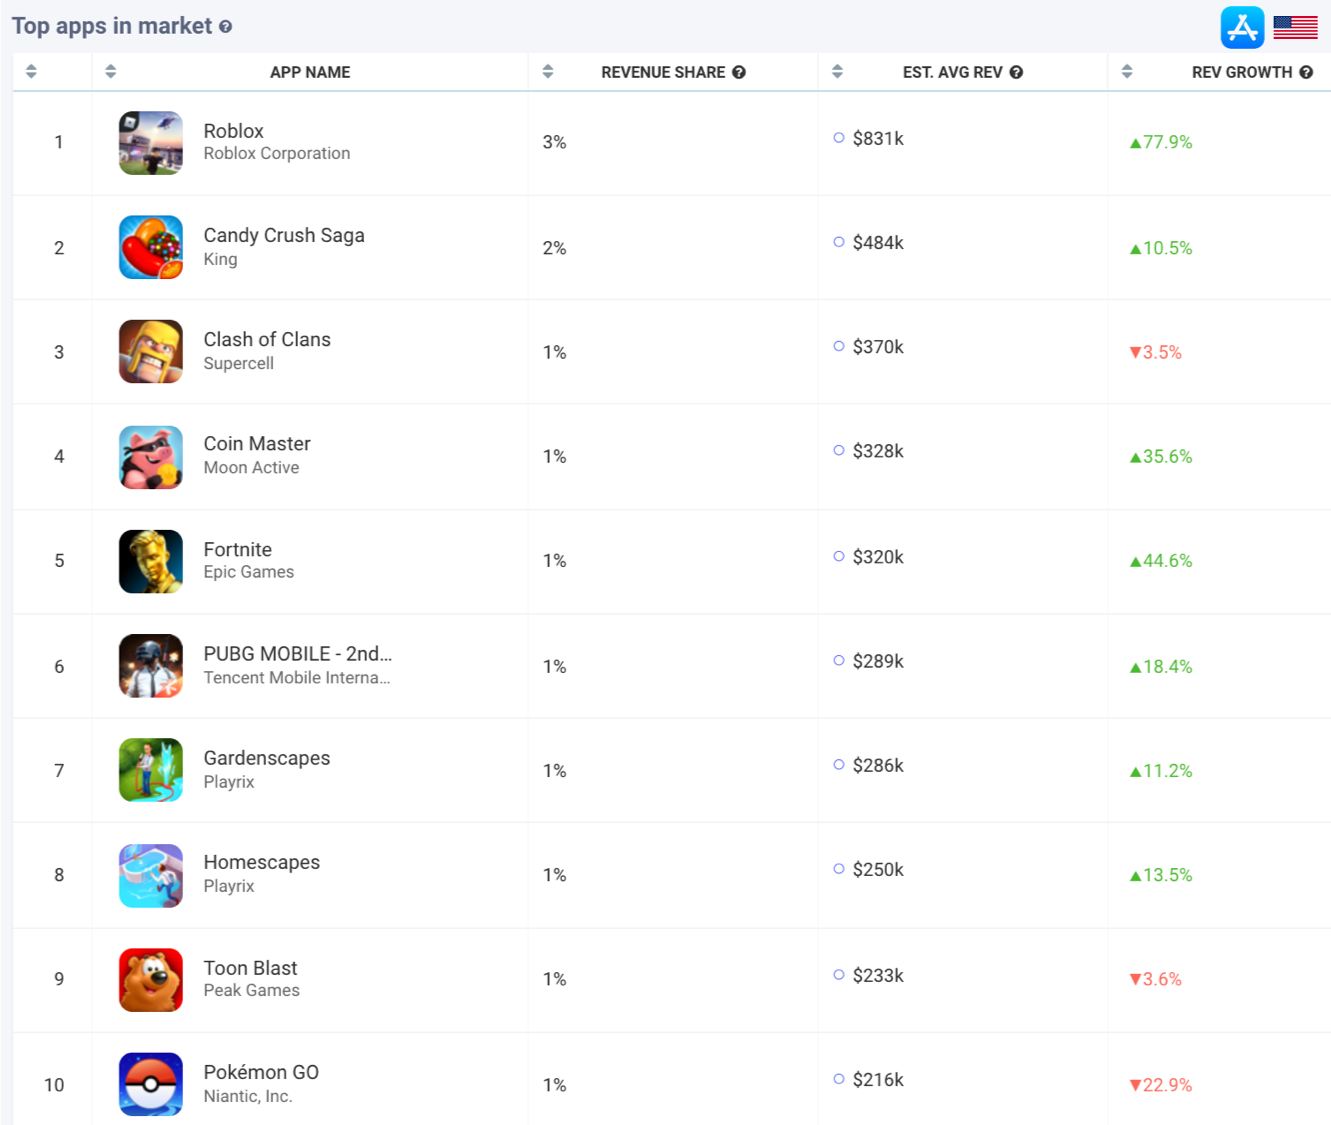 AppTweak Market Intelligence: Top Revenue Games in the US Apple App Store